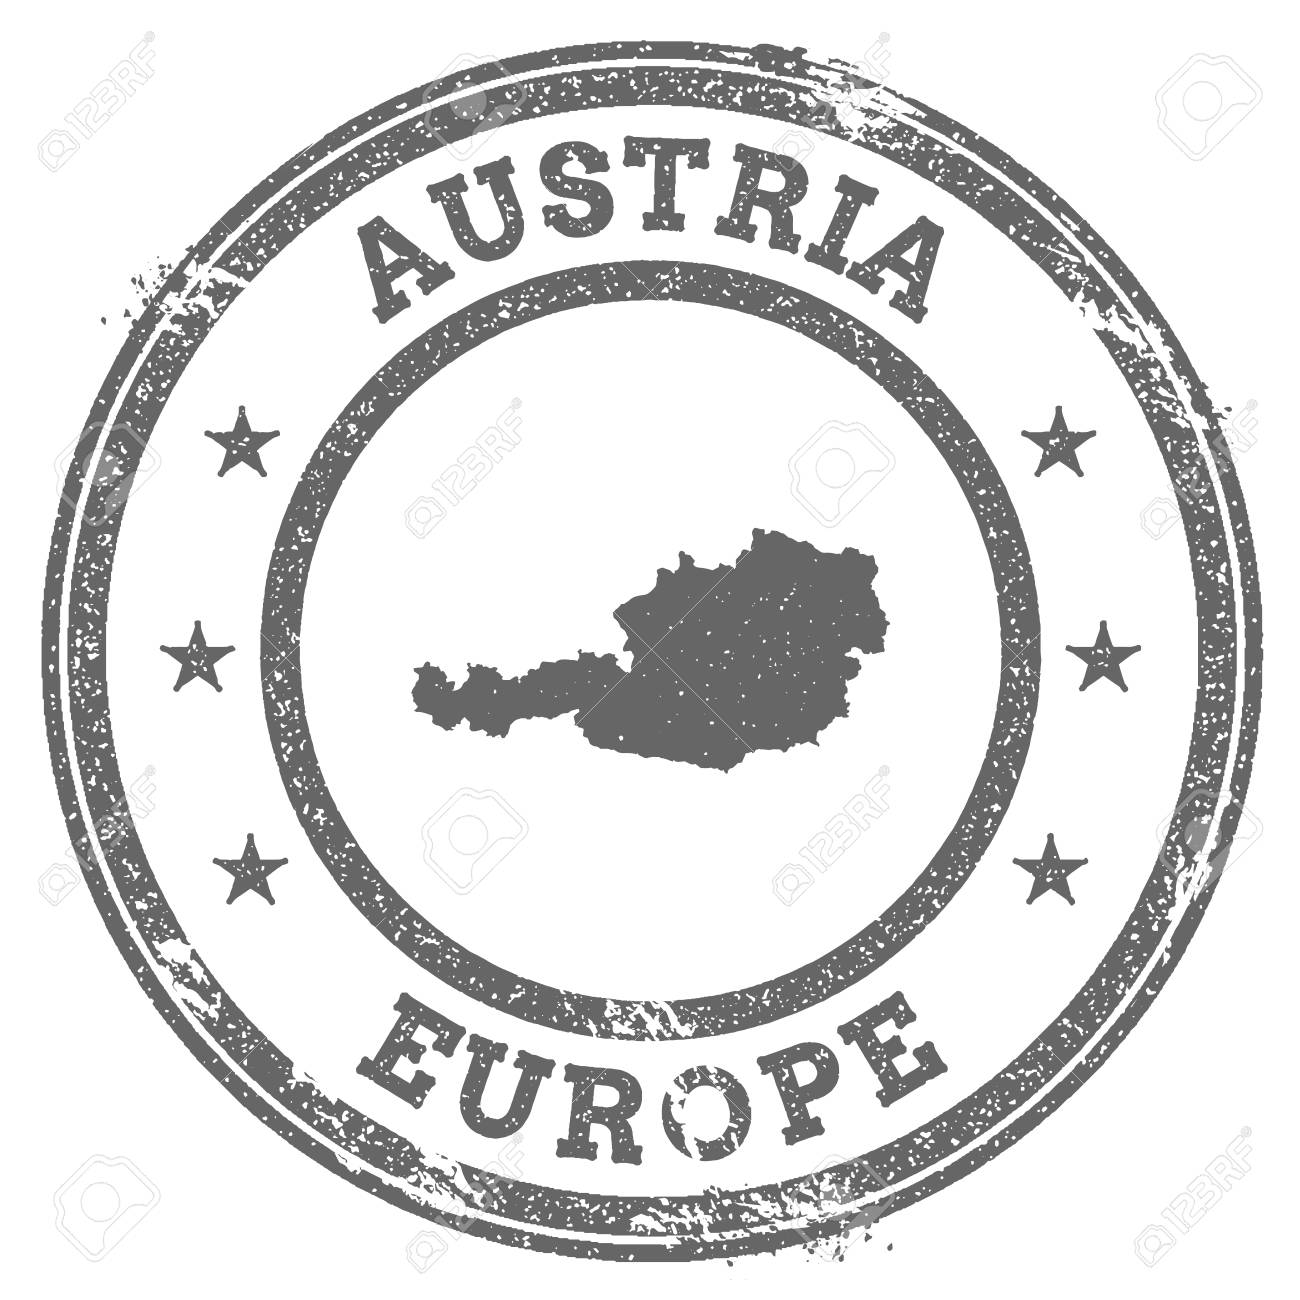 Austria grunge rubber stamp map and text. Round textured country...